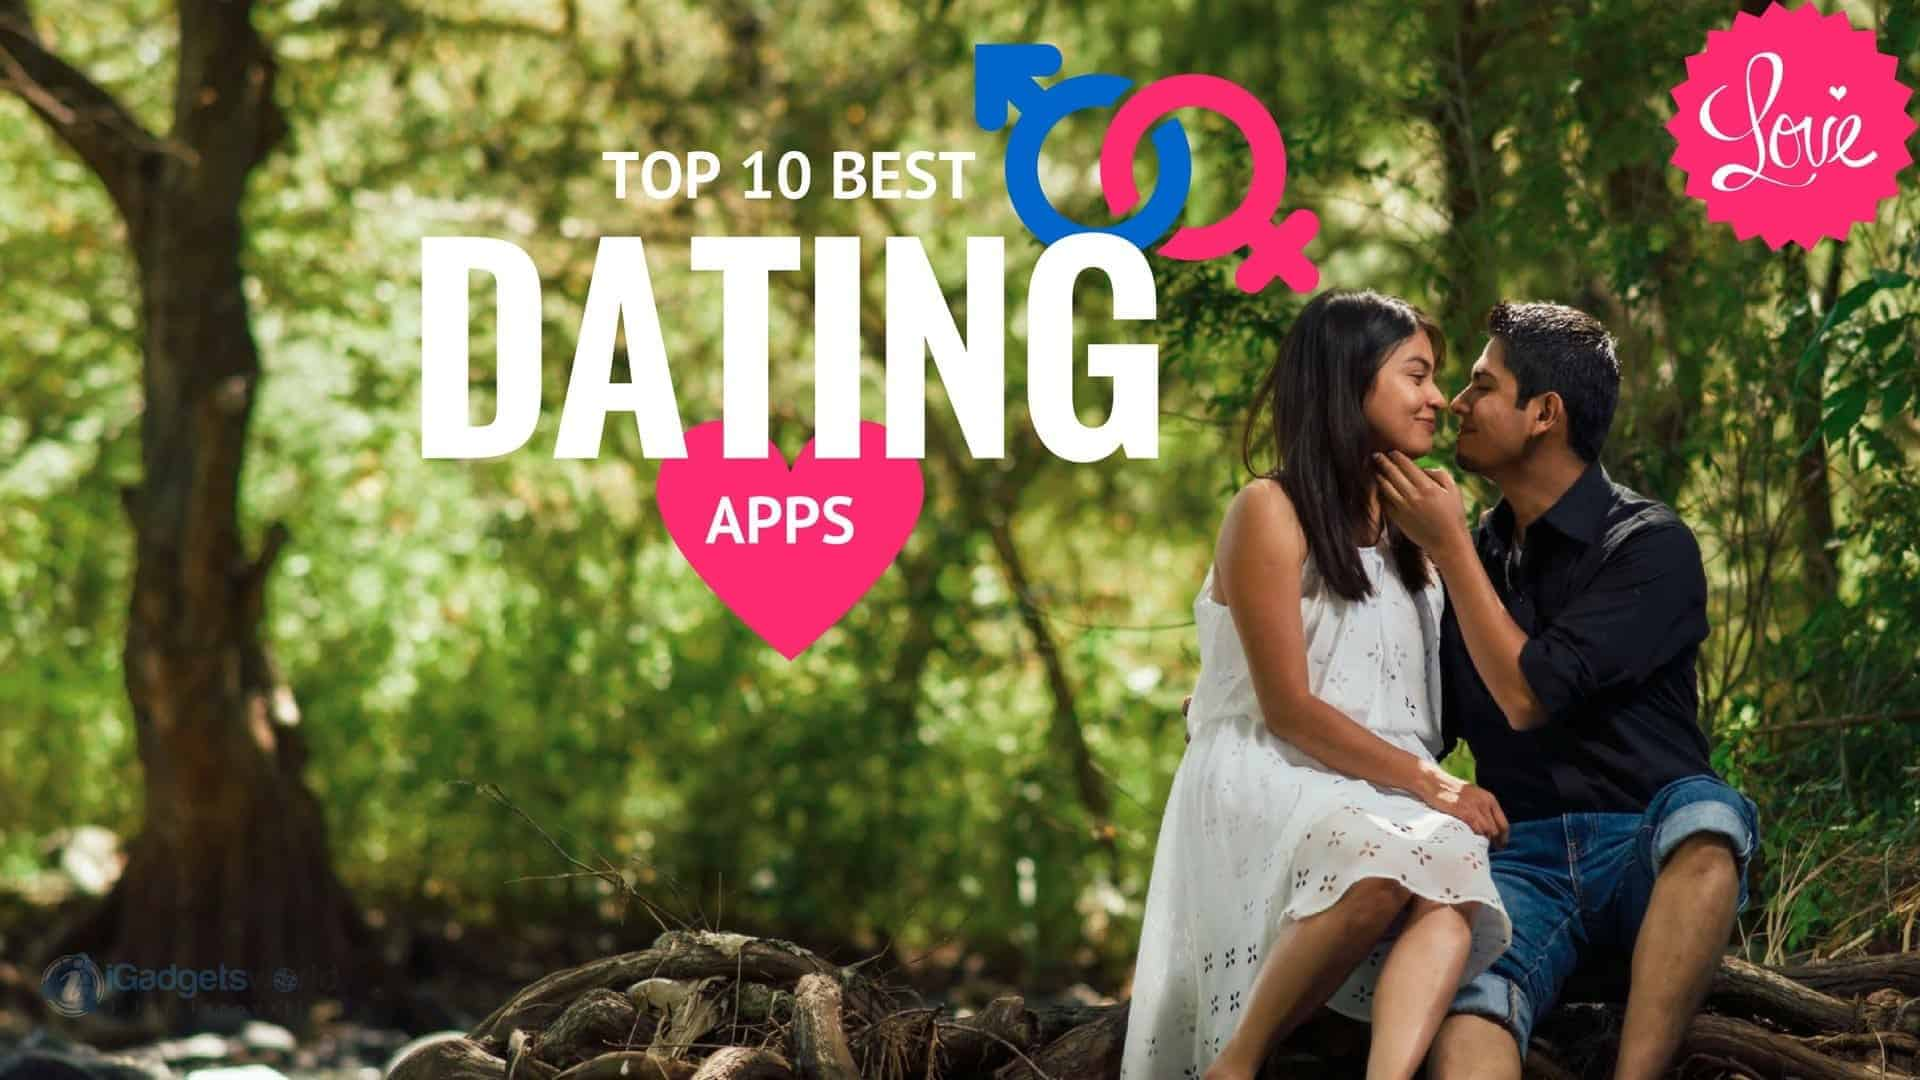 Top dating apps for android india